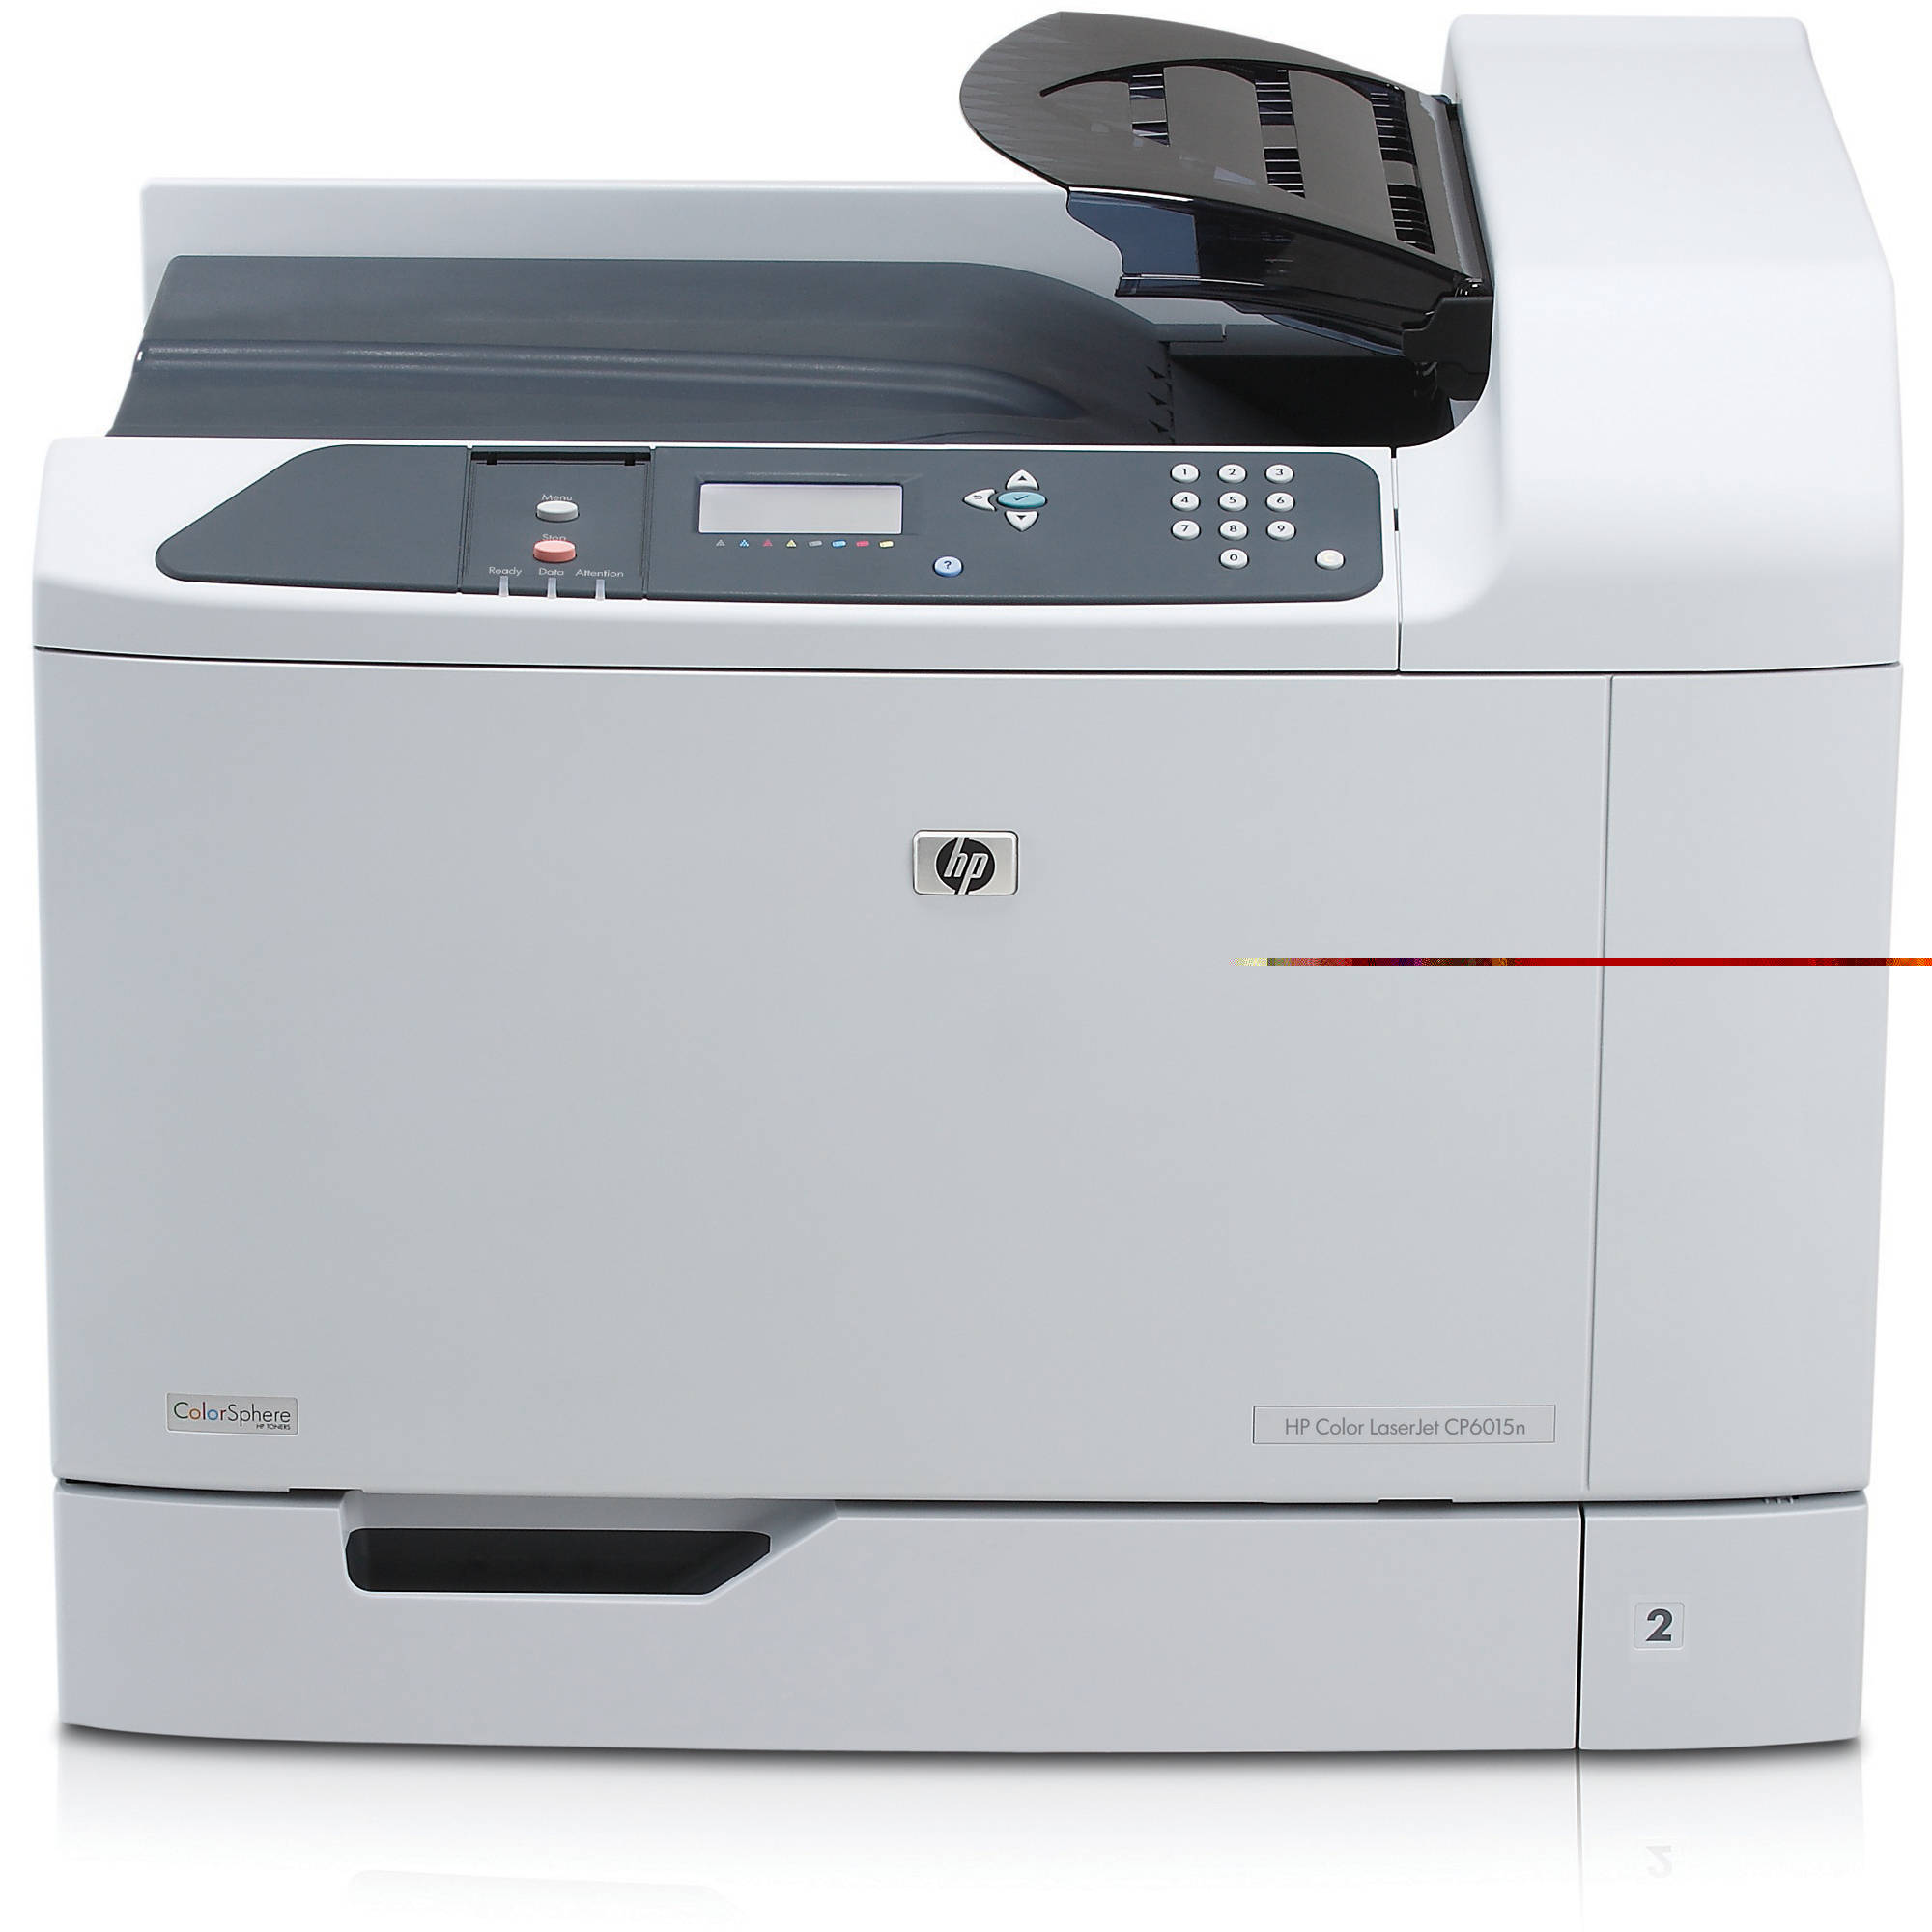 Color printers laser - Hp Laserjet Cp6015dn Network Color Laser Printer